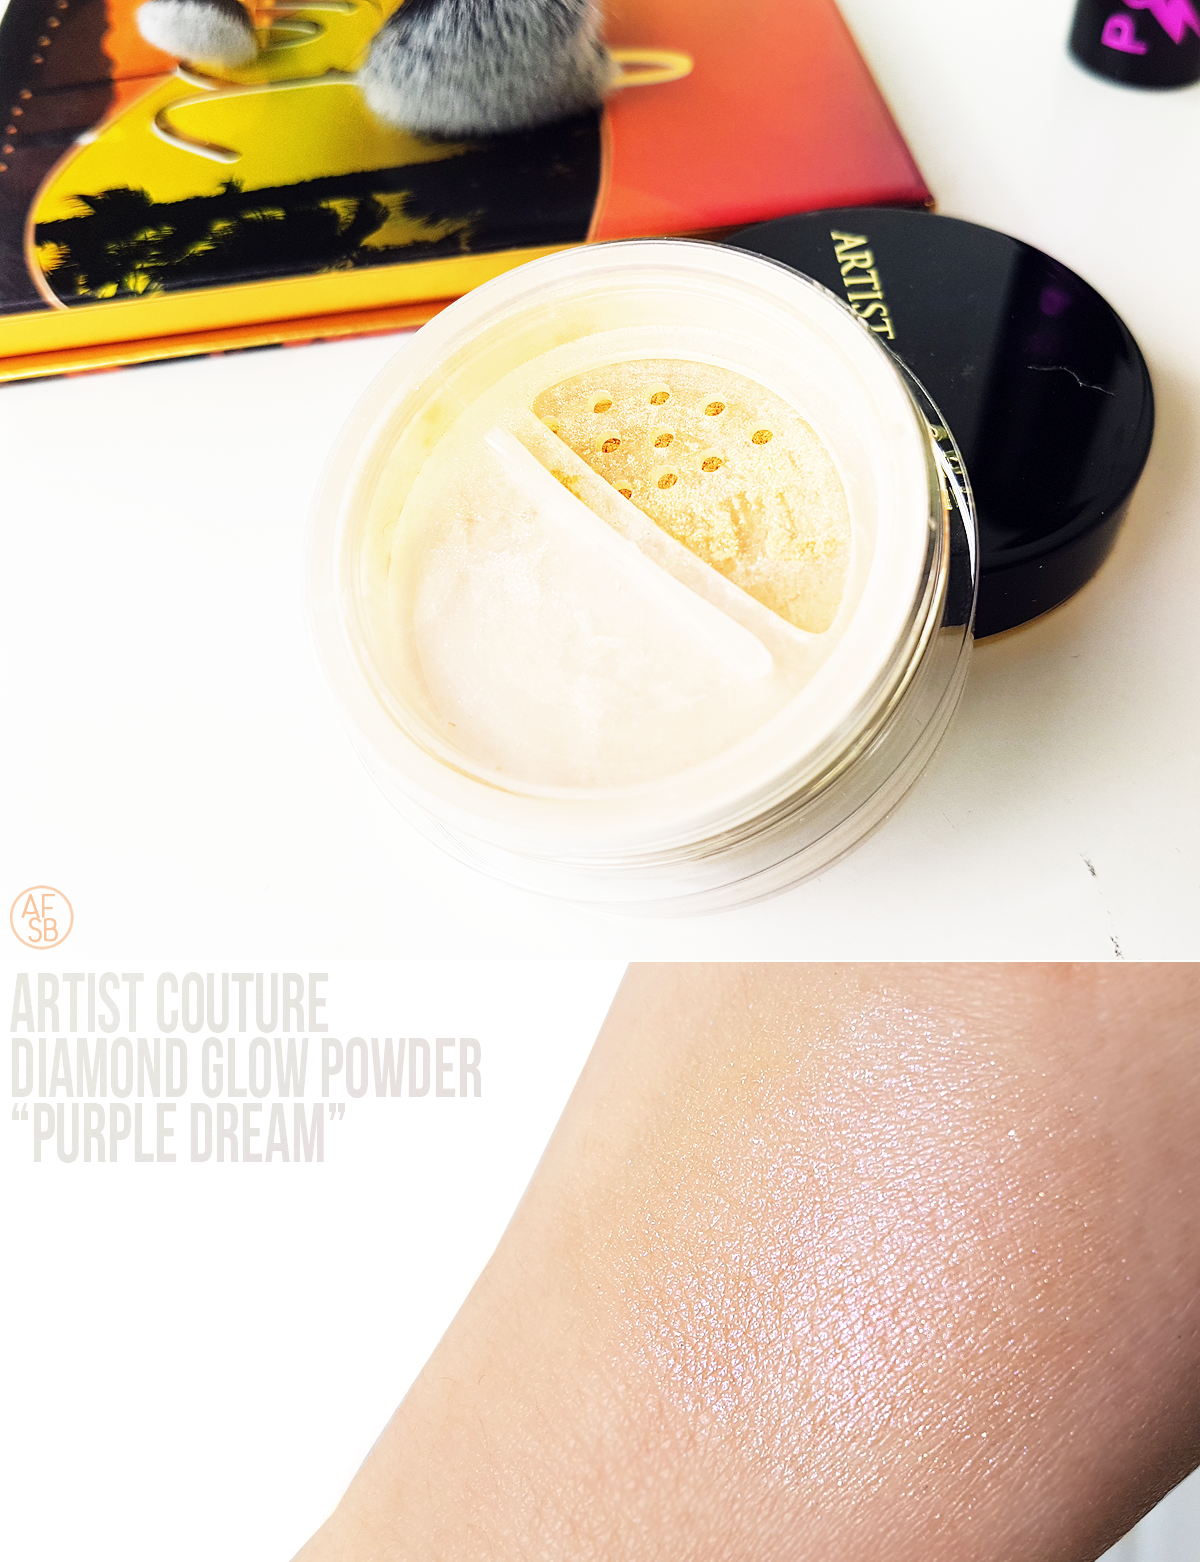 Artist Couture - Diamond Glow Powder #beautybox #highlighter